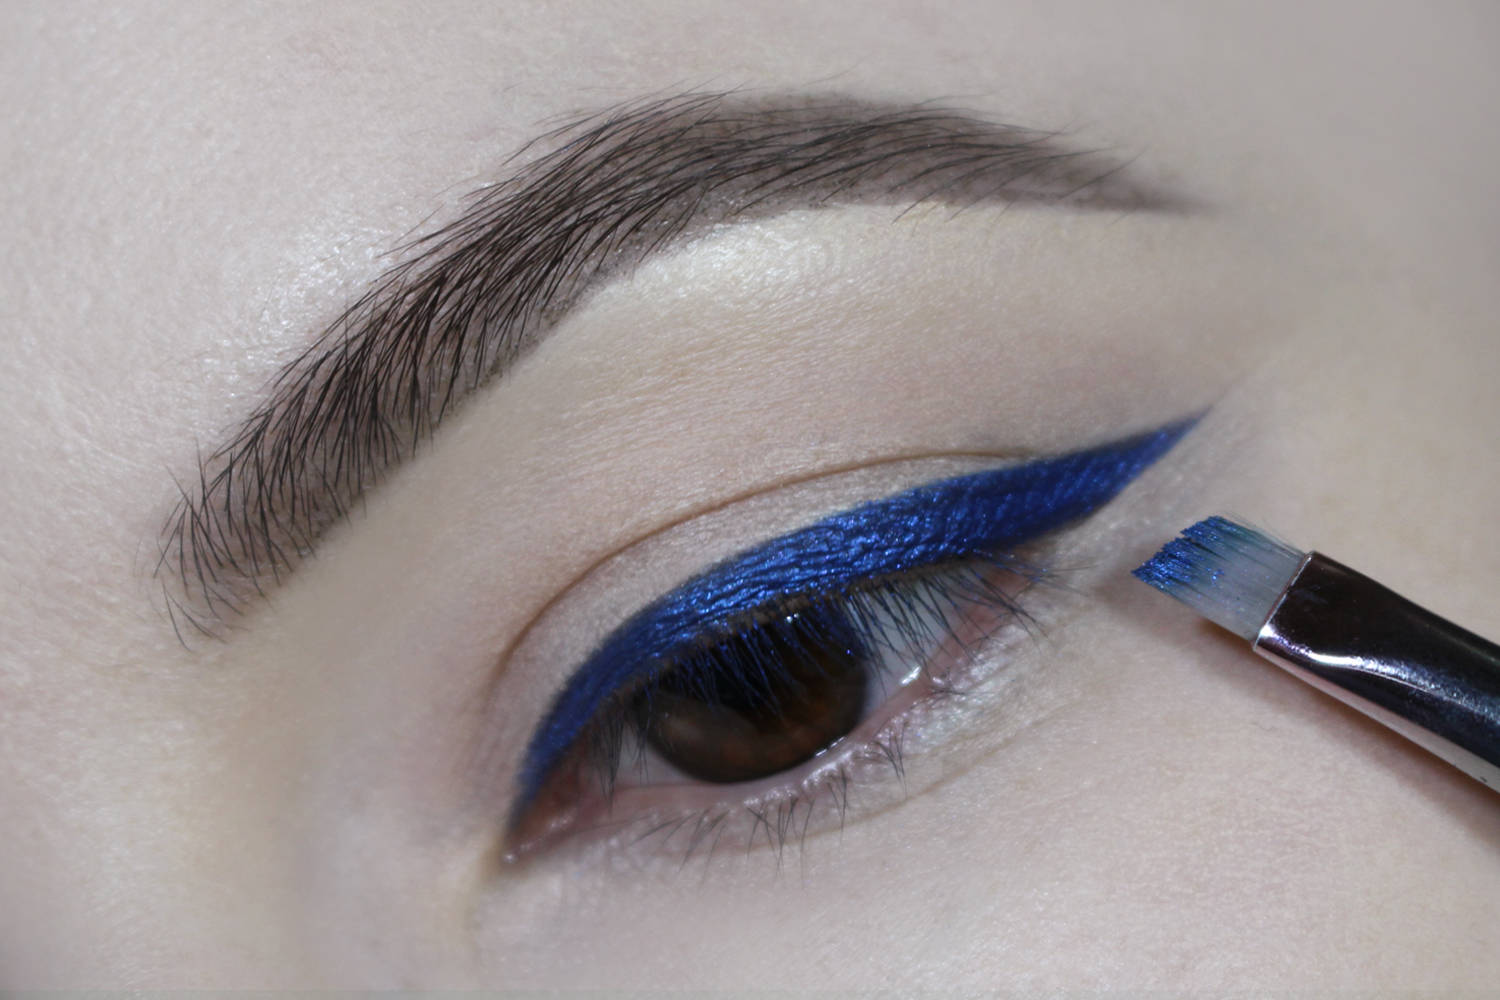 a close-up picture of an eye with a navy-blue cat eyeliner